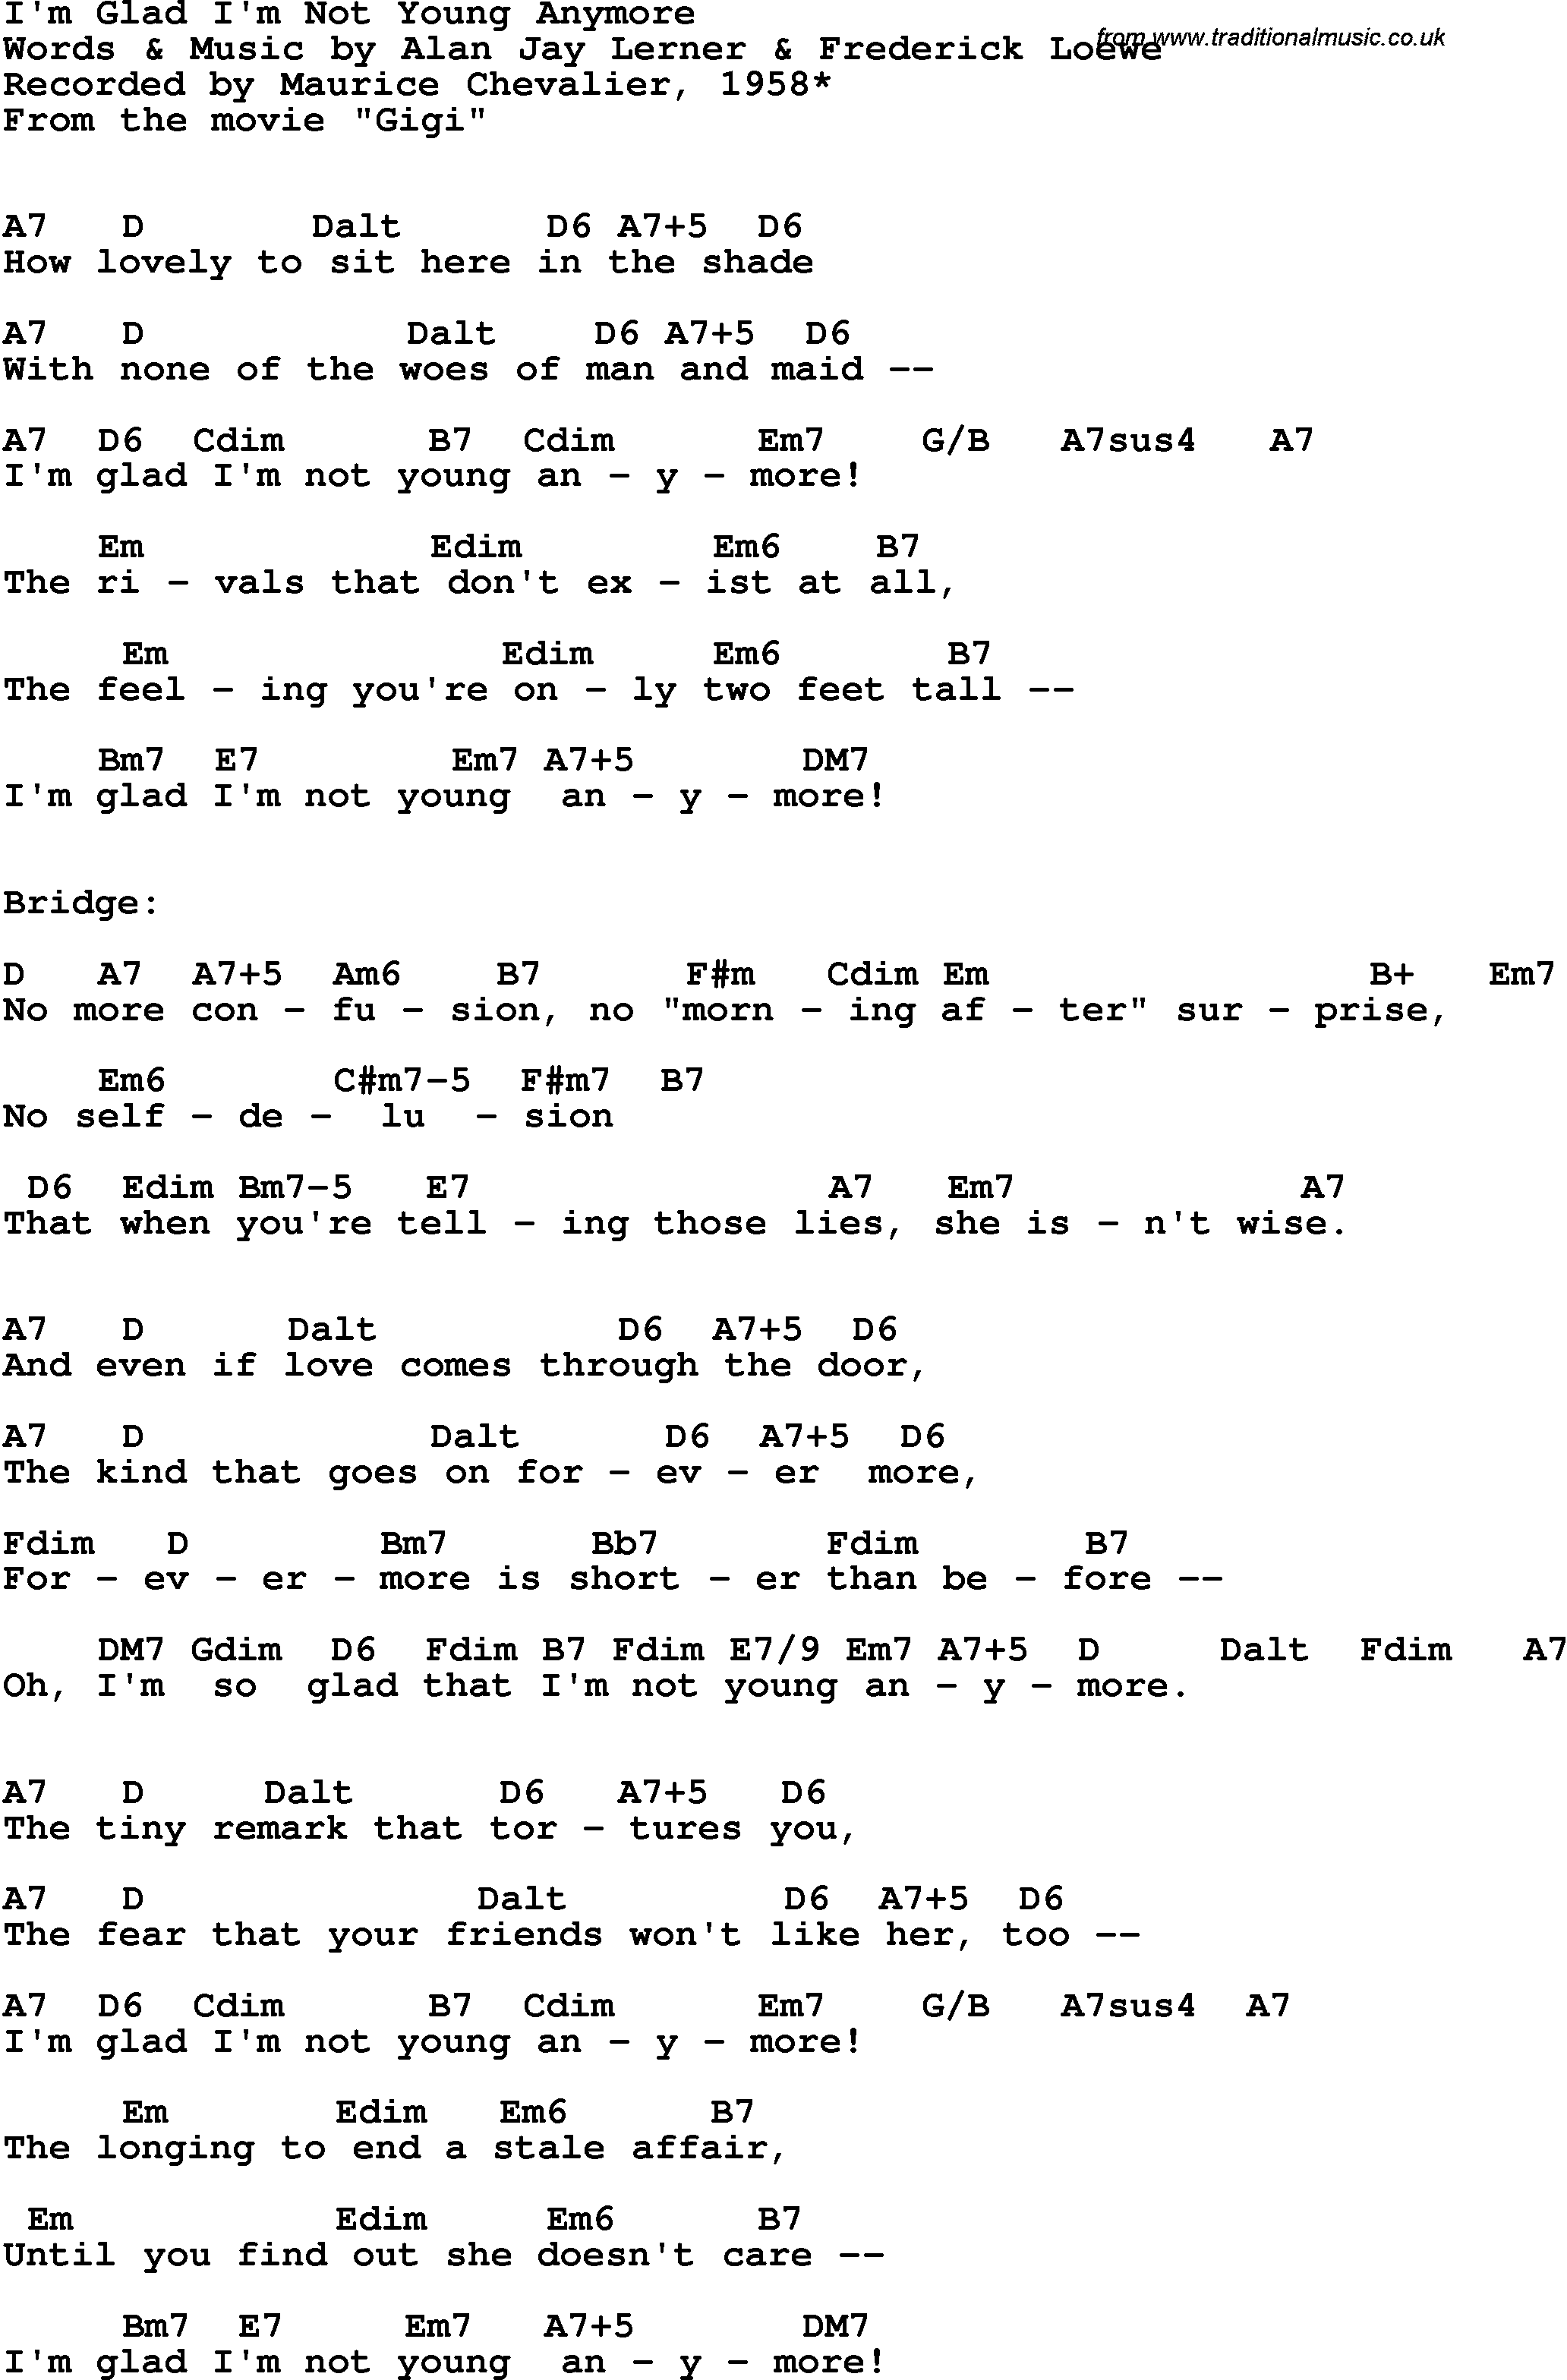 Song Lyrics With Guitar Chords For Im Glad Im Not Young Anymore